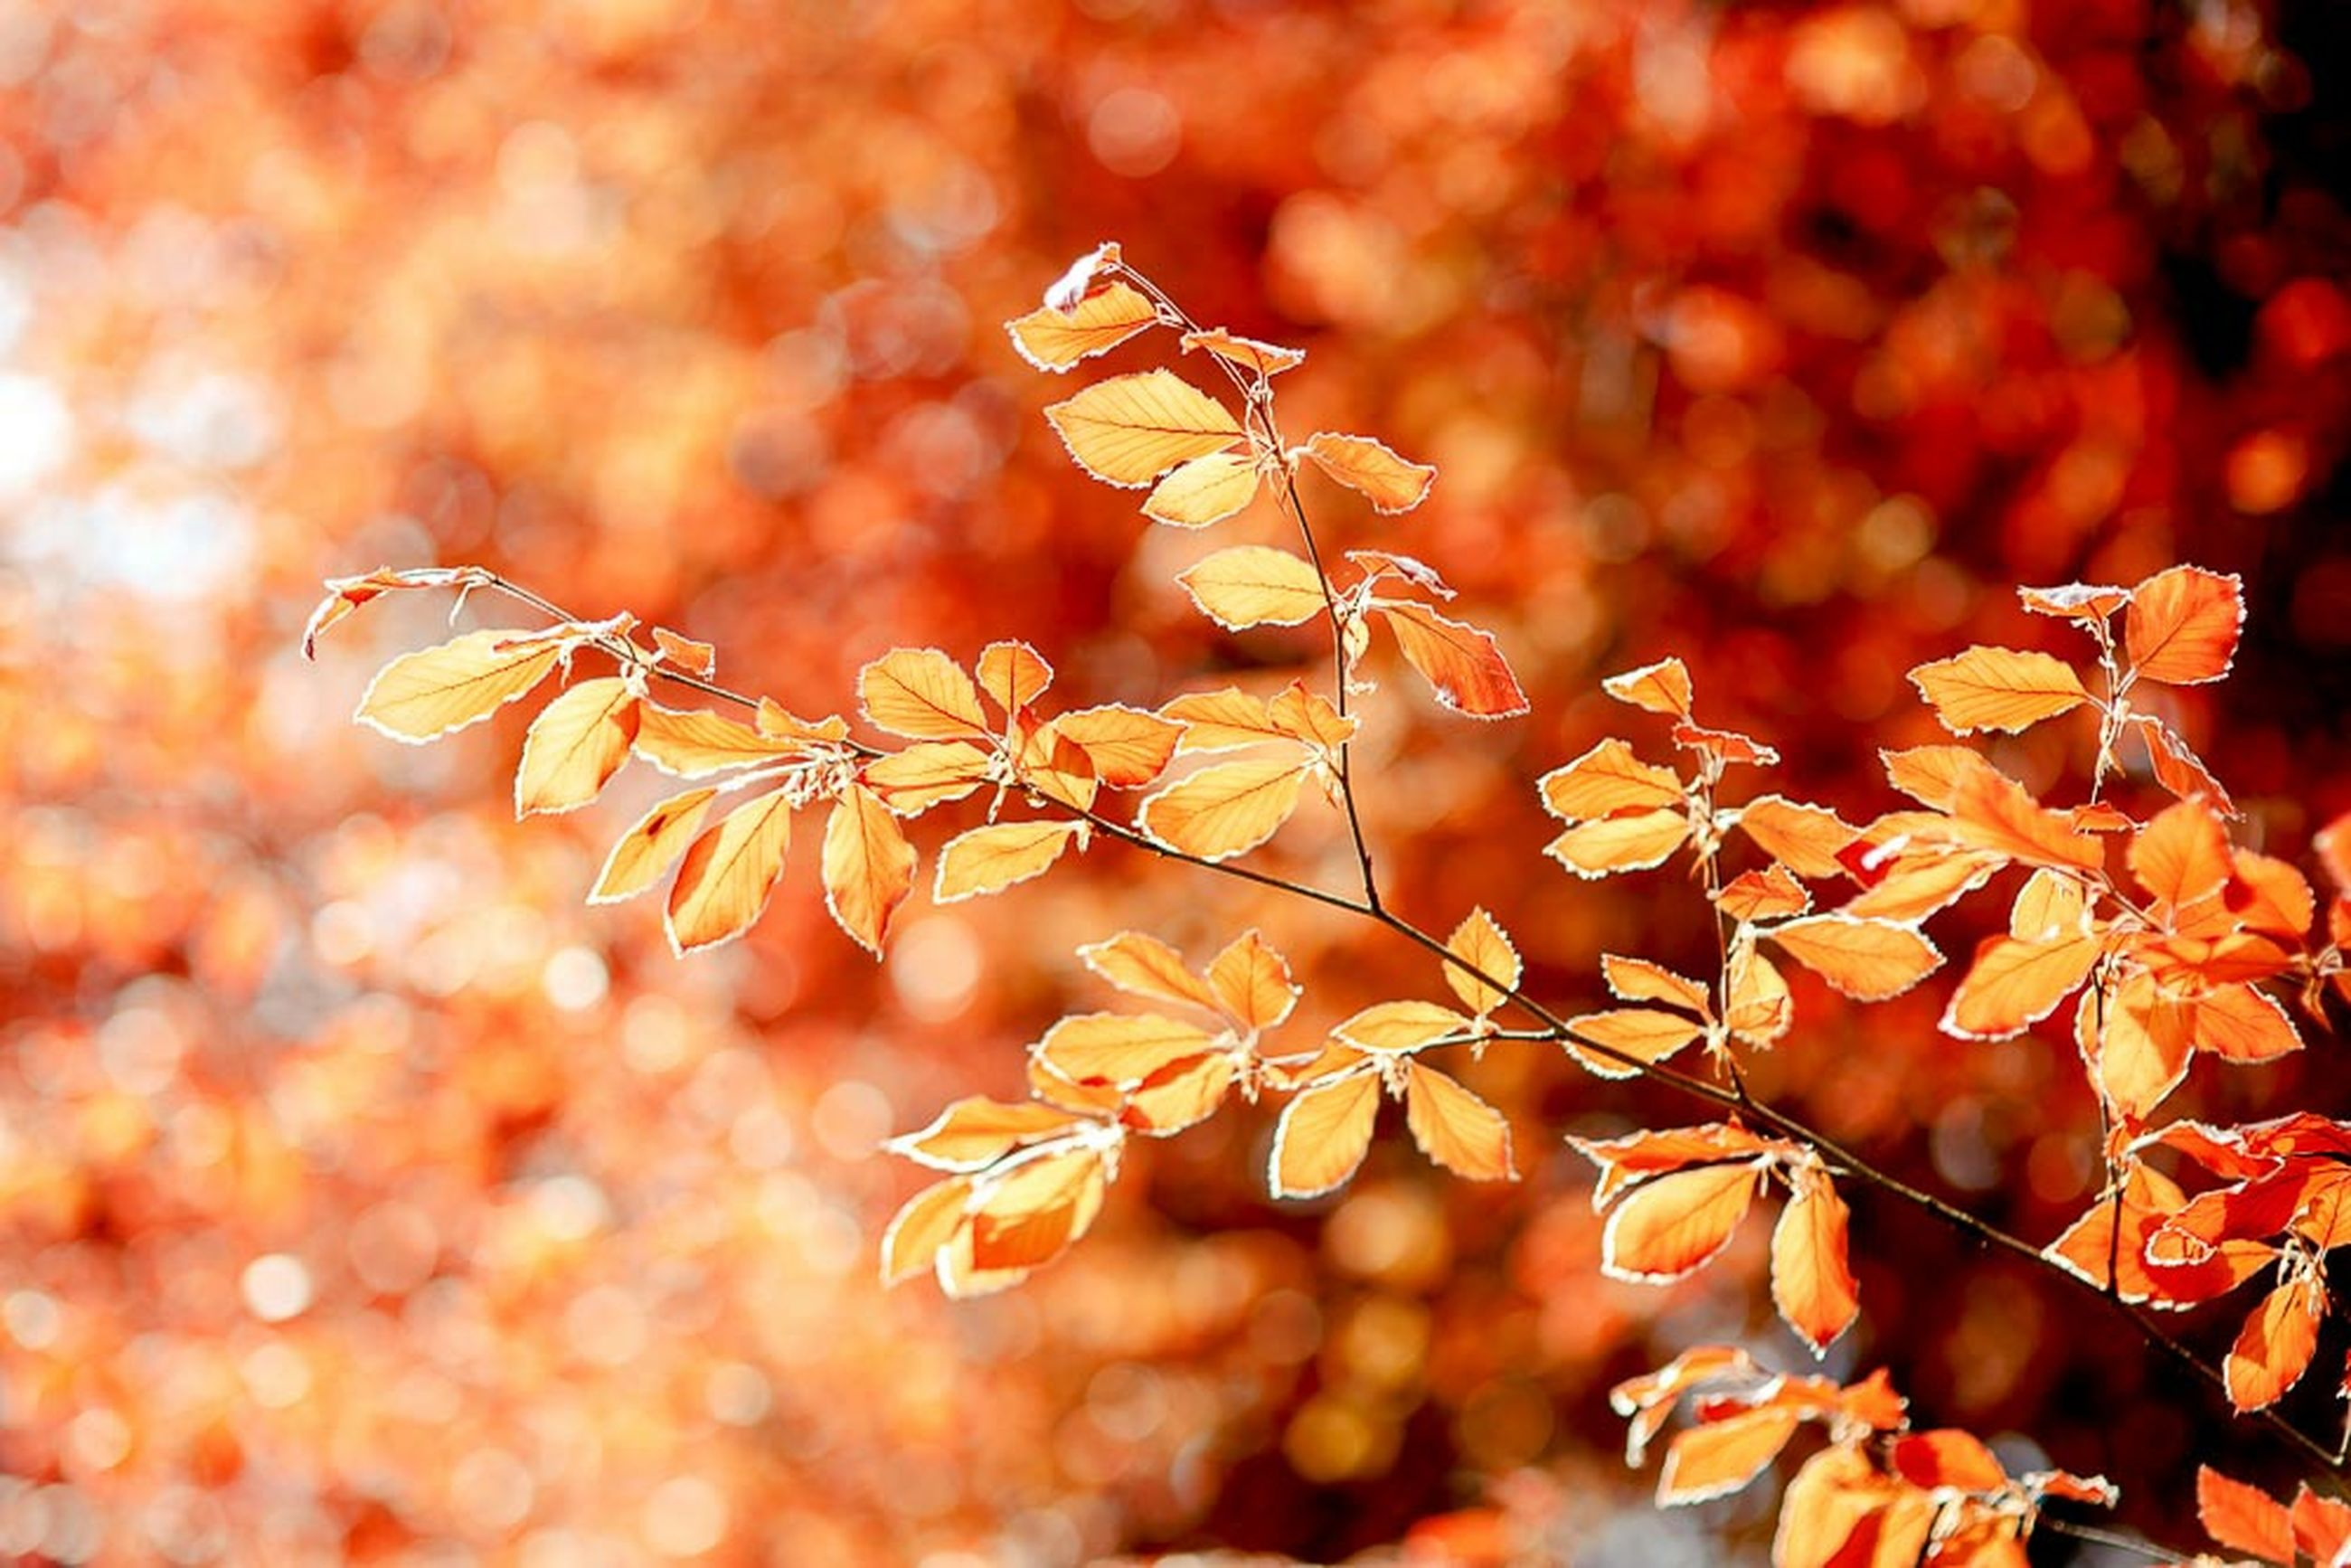 autumn, change, leaf, dry, focus on foreground, close-up, season, orange color, selective focus, nature, leaves, twig, growth, branch, red, plant, outdoors, brown, day, maple leaf